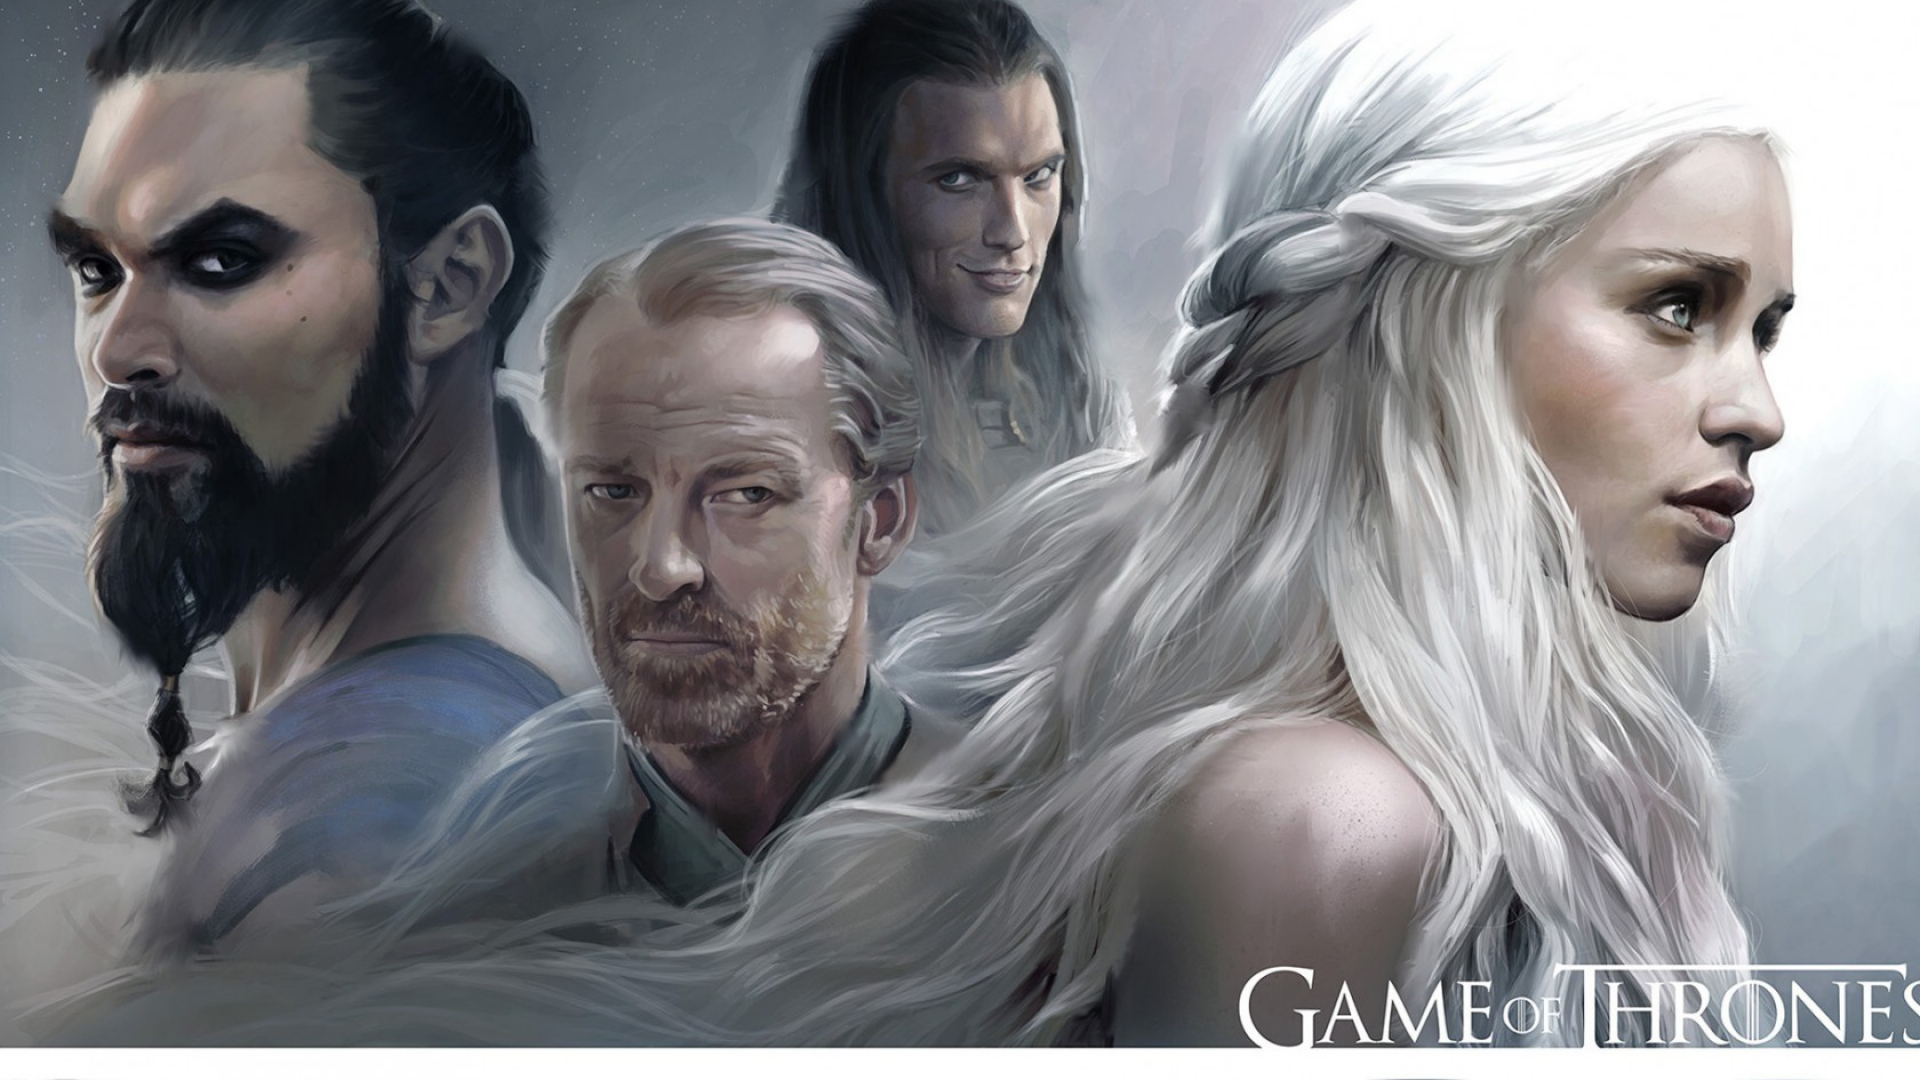 Game Of Thrones Art 2, HD Tv Shows, 4k Wallpapers, Images ...